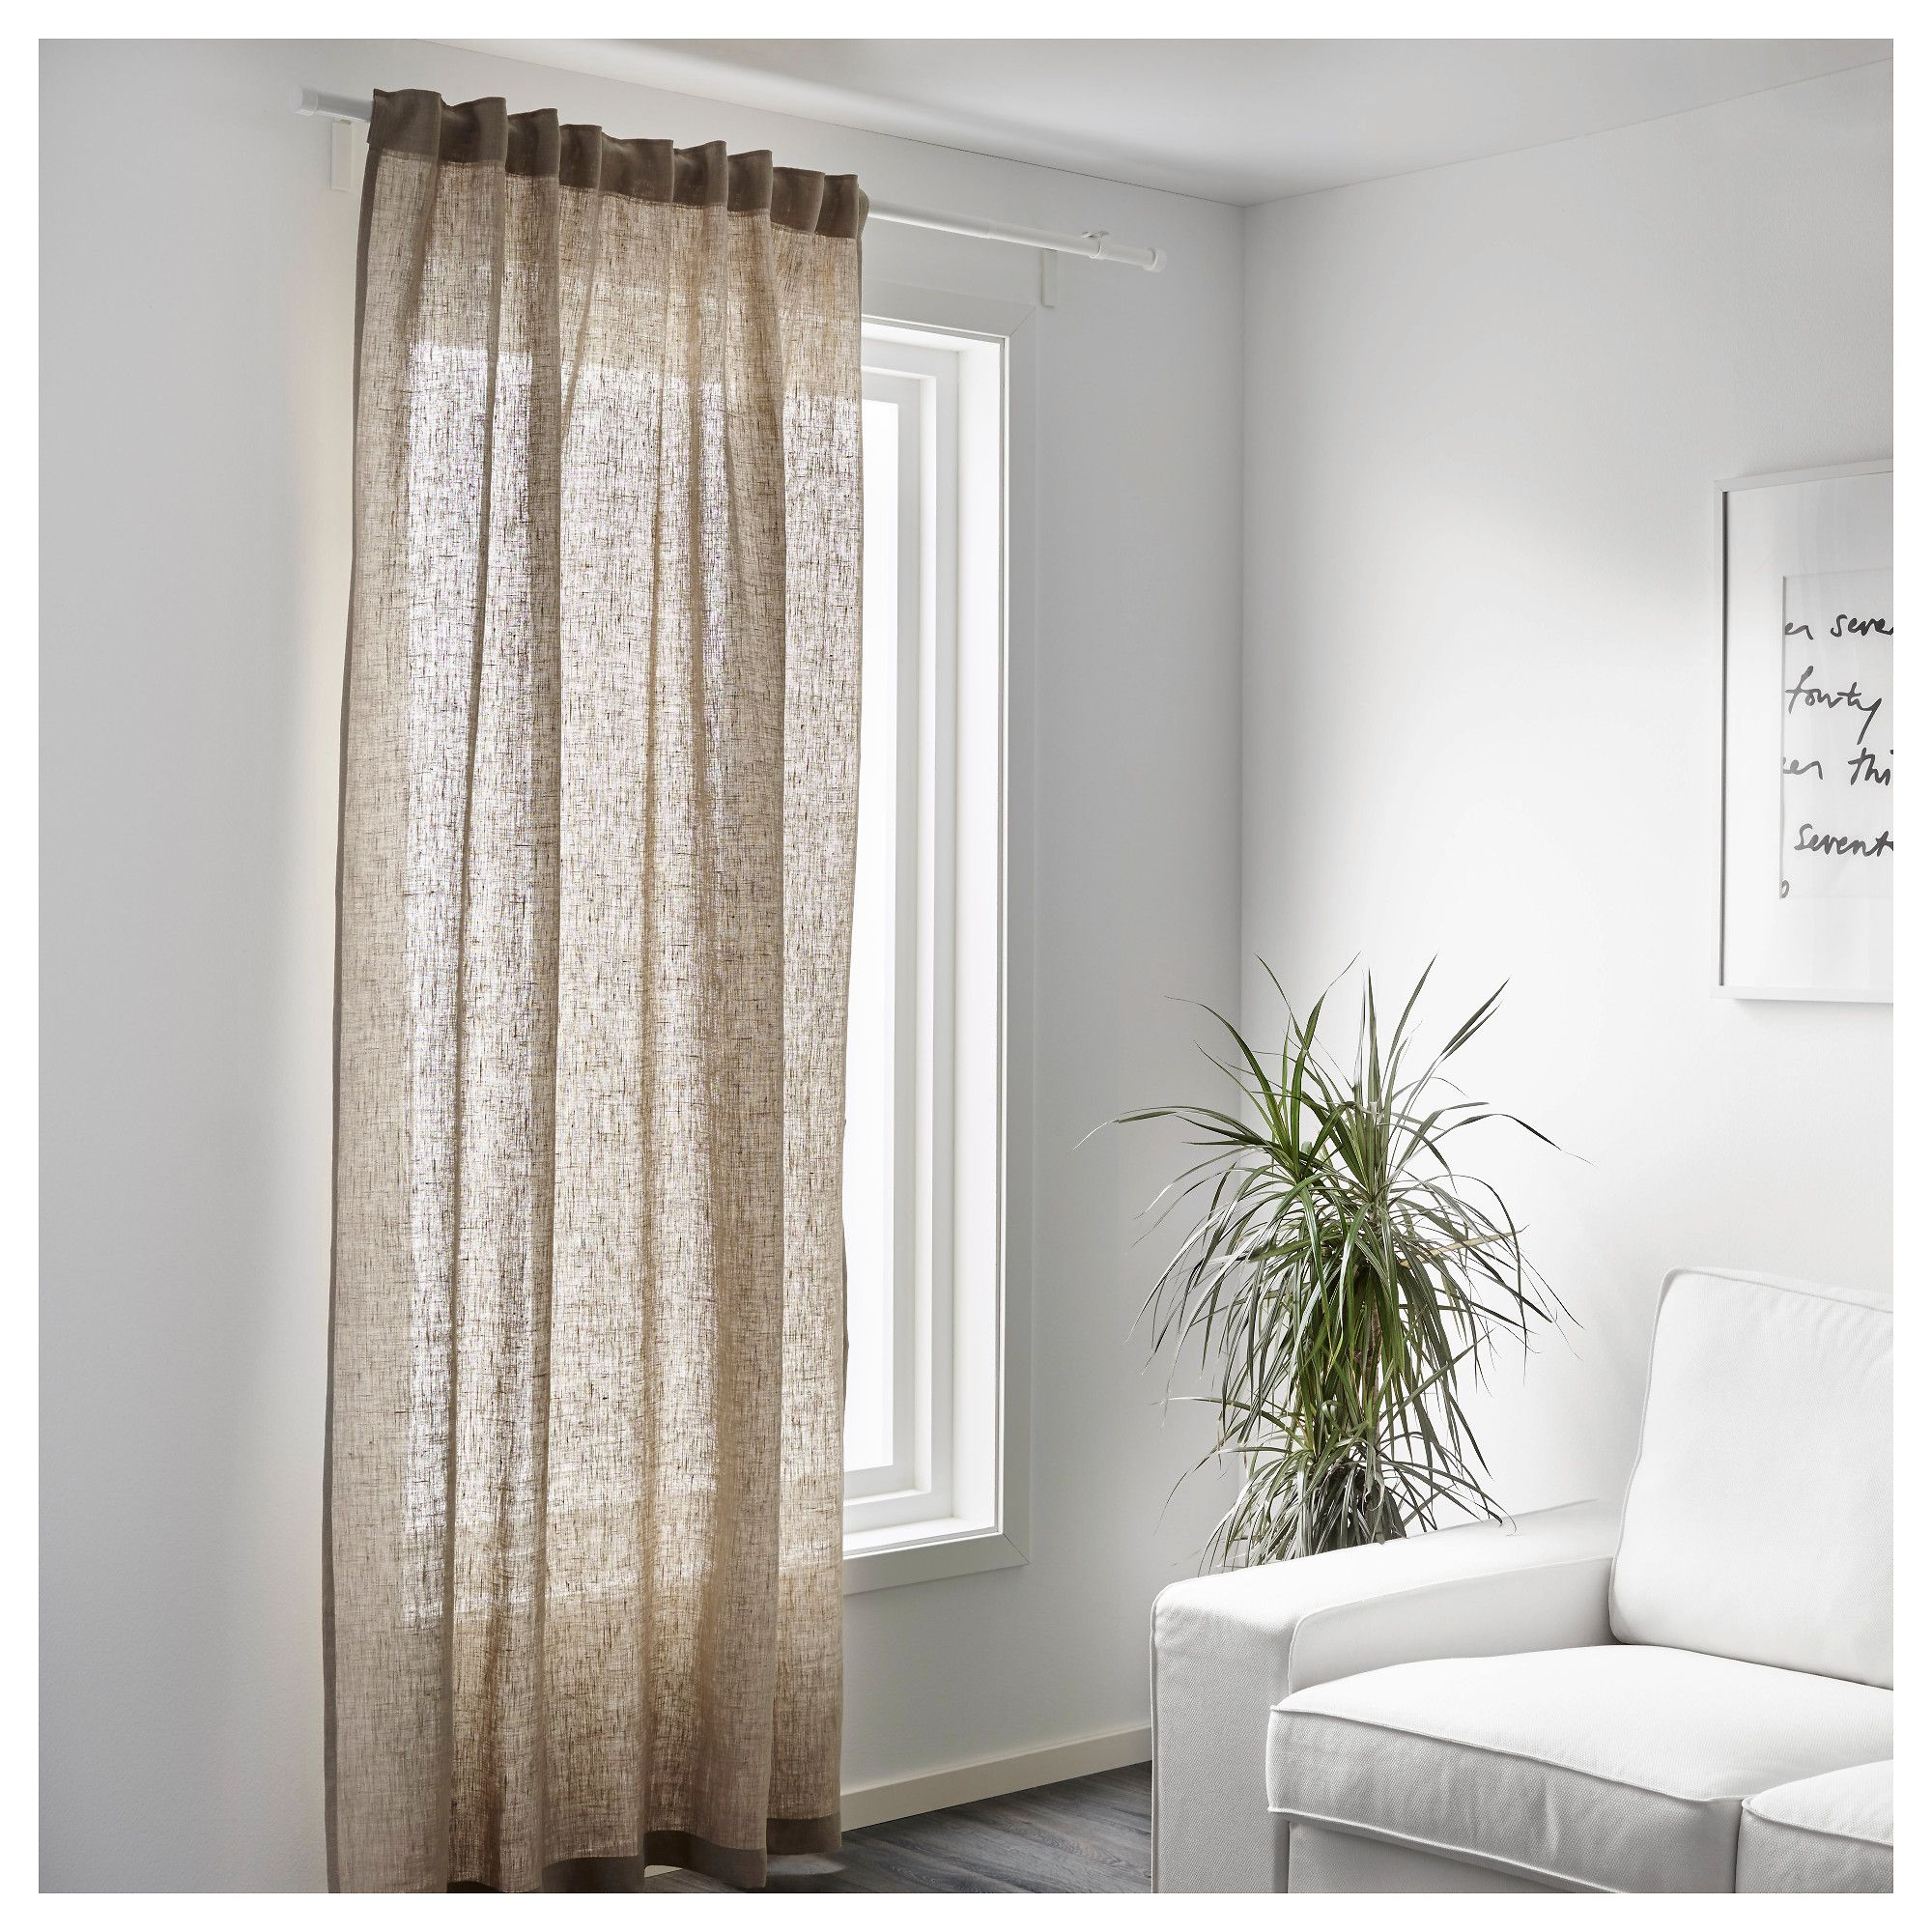 Aina Tessuto A Metraggio Color Naturale Linen Curtain And Linens